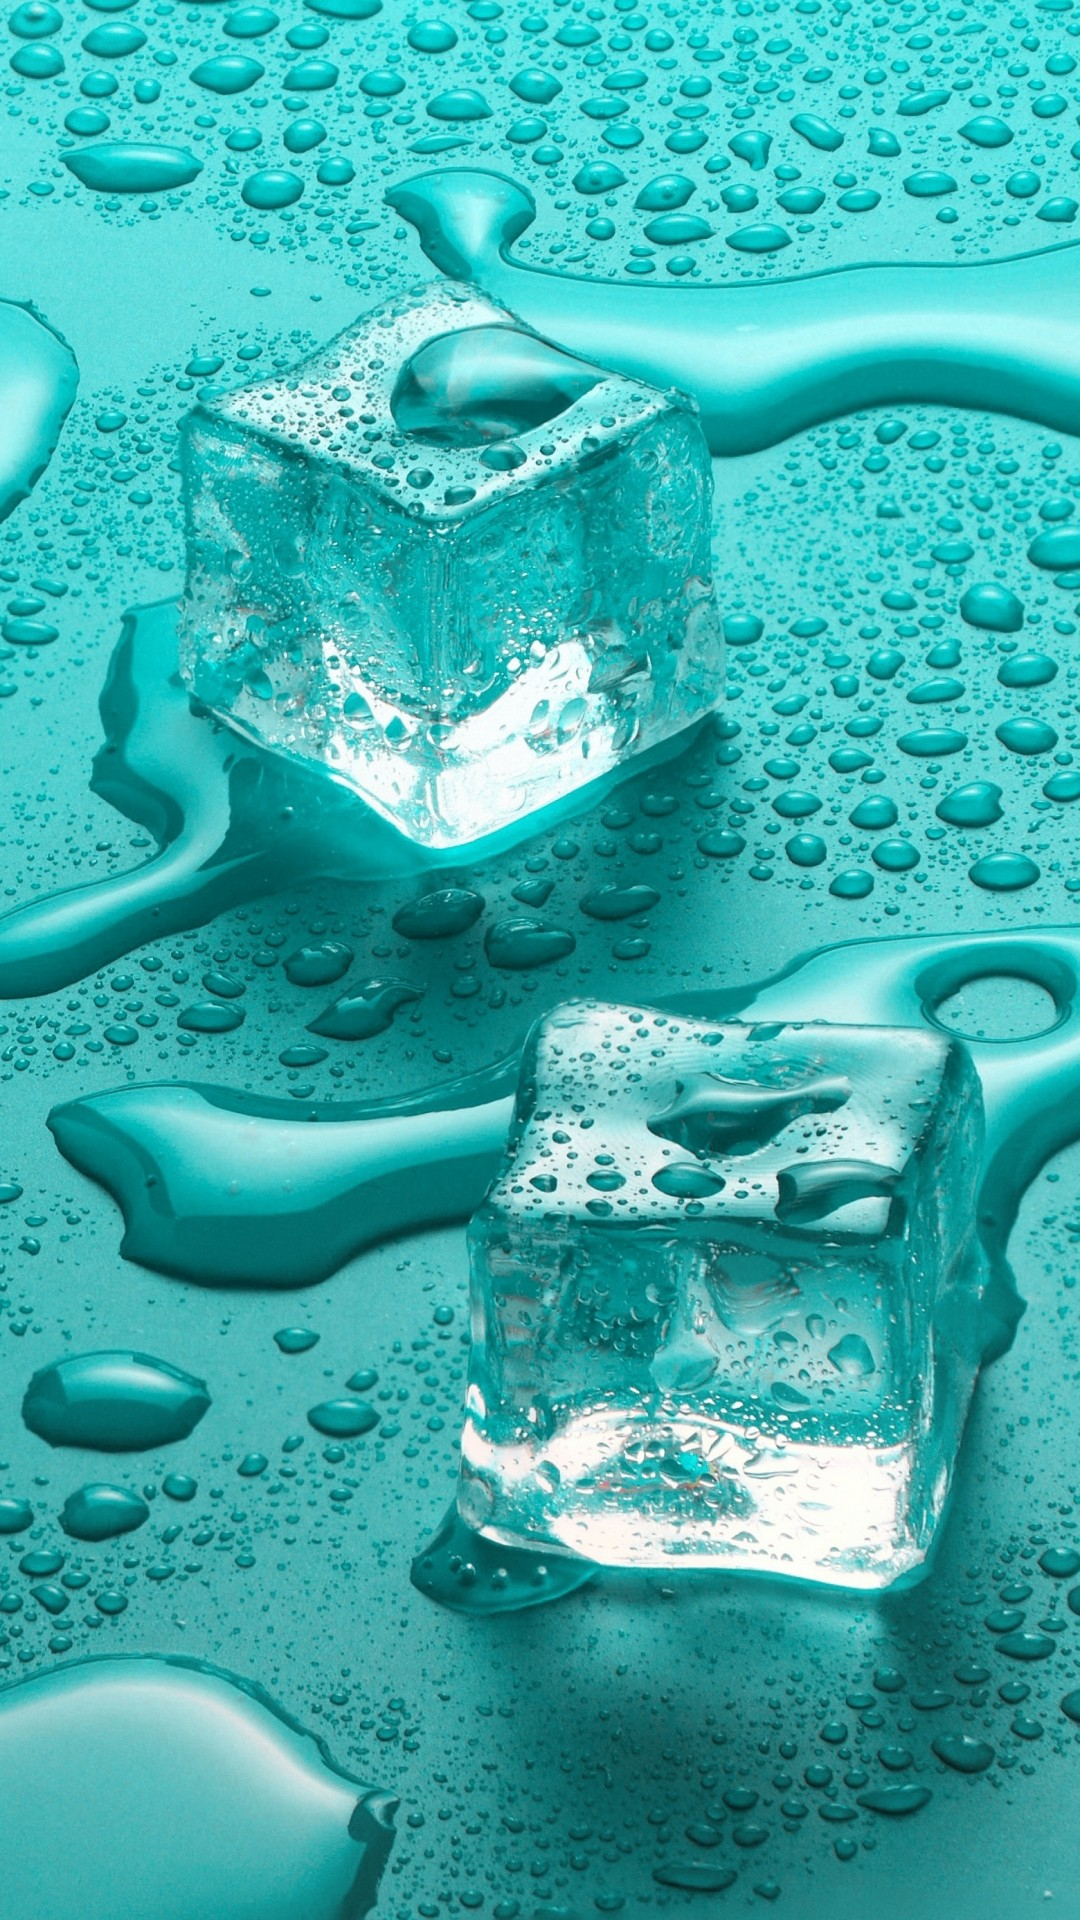 iPhone wallpaper ice1 Ice